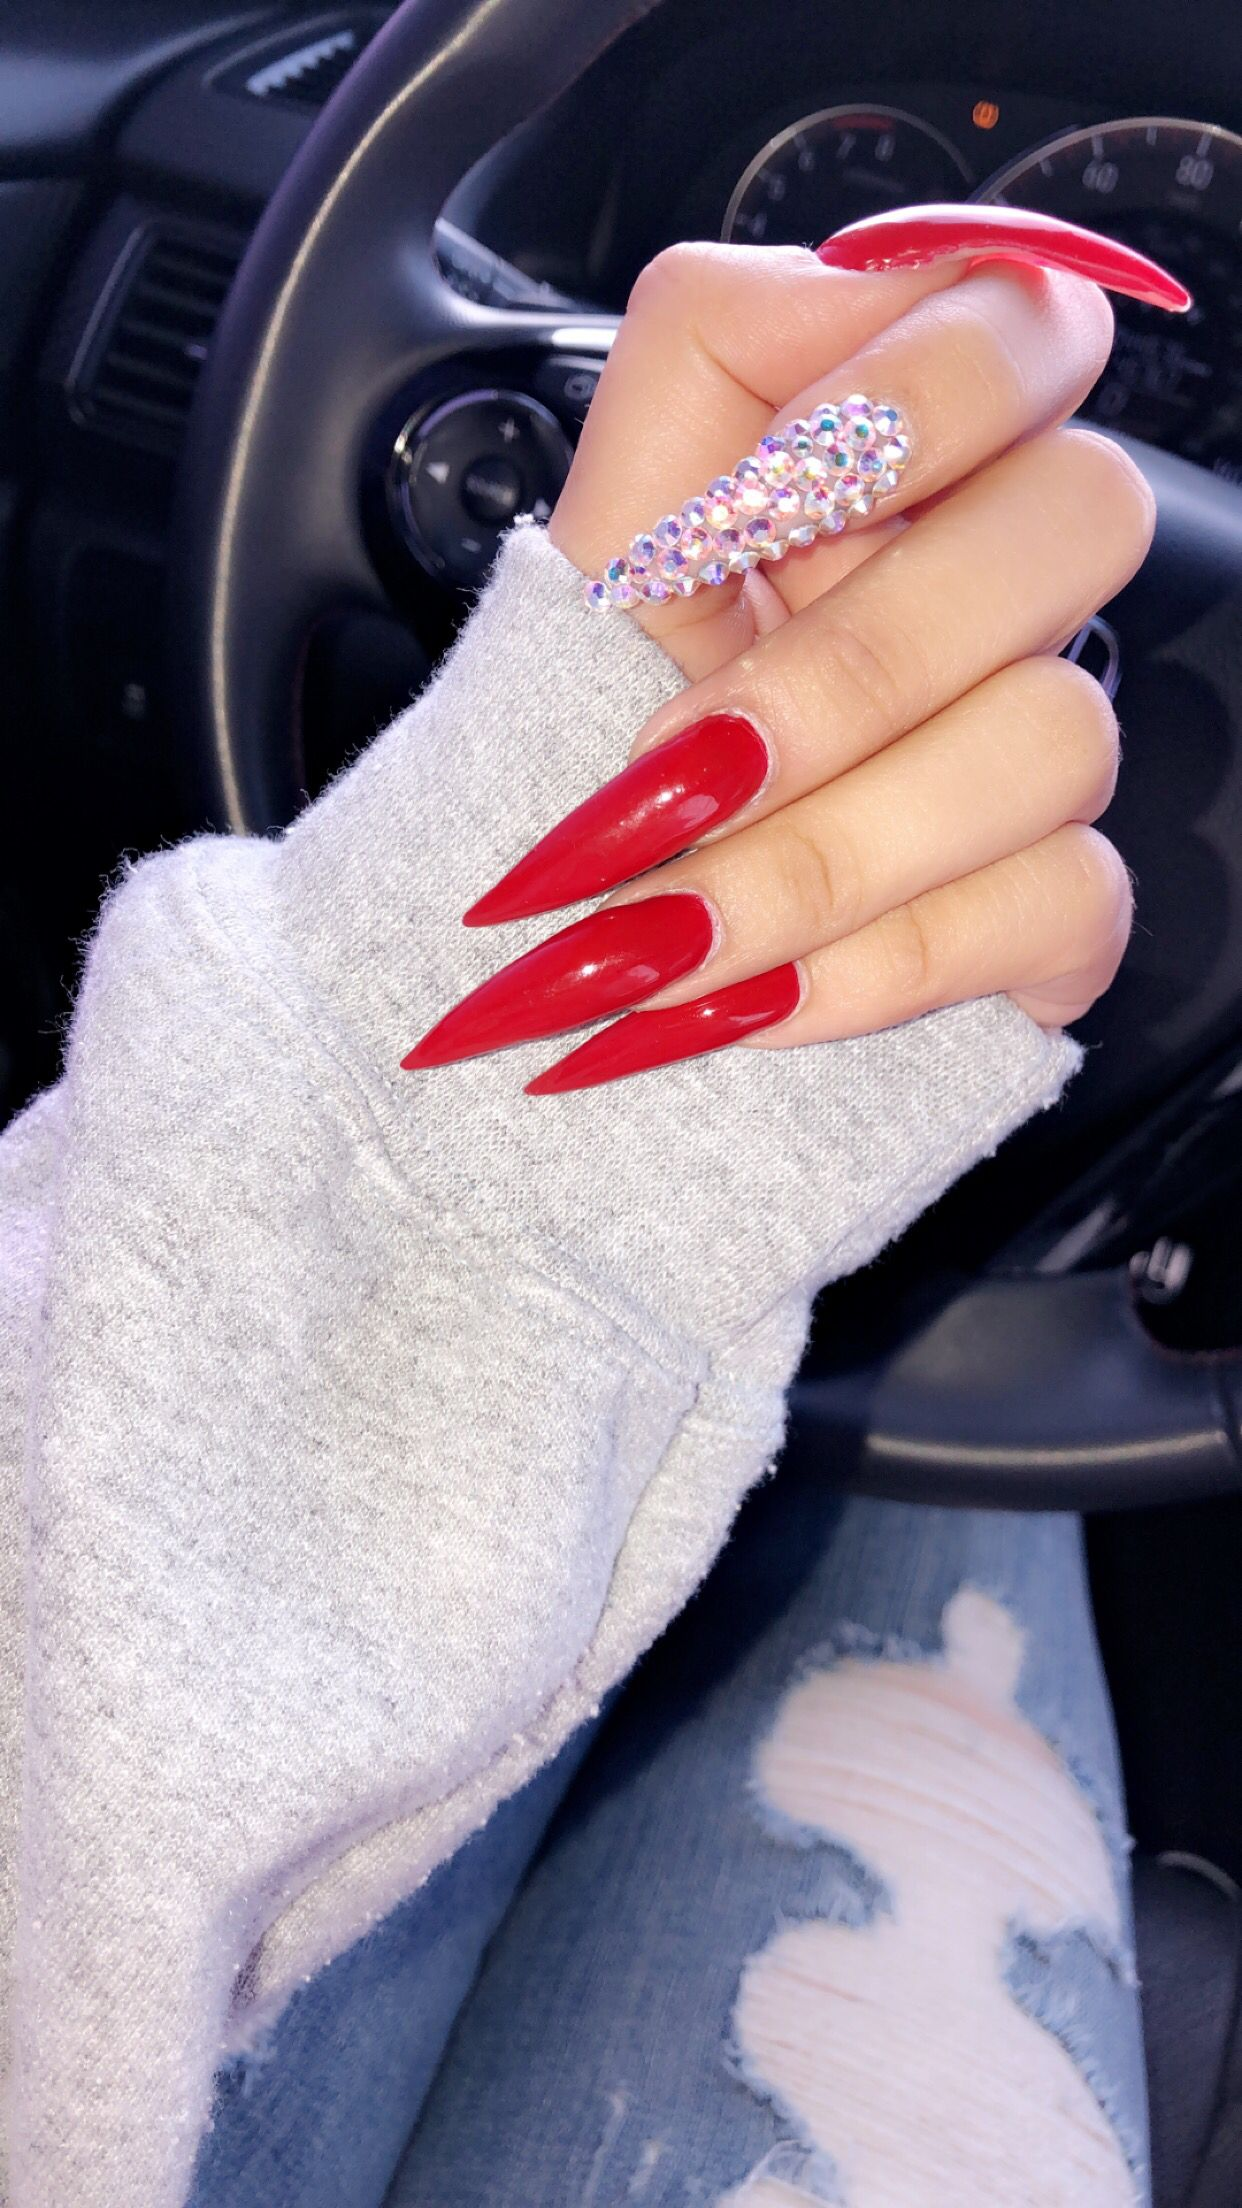 Claws Red Acrylic Nails Red Stiletto Nails Long Stiletto Nails